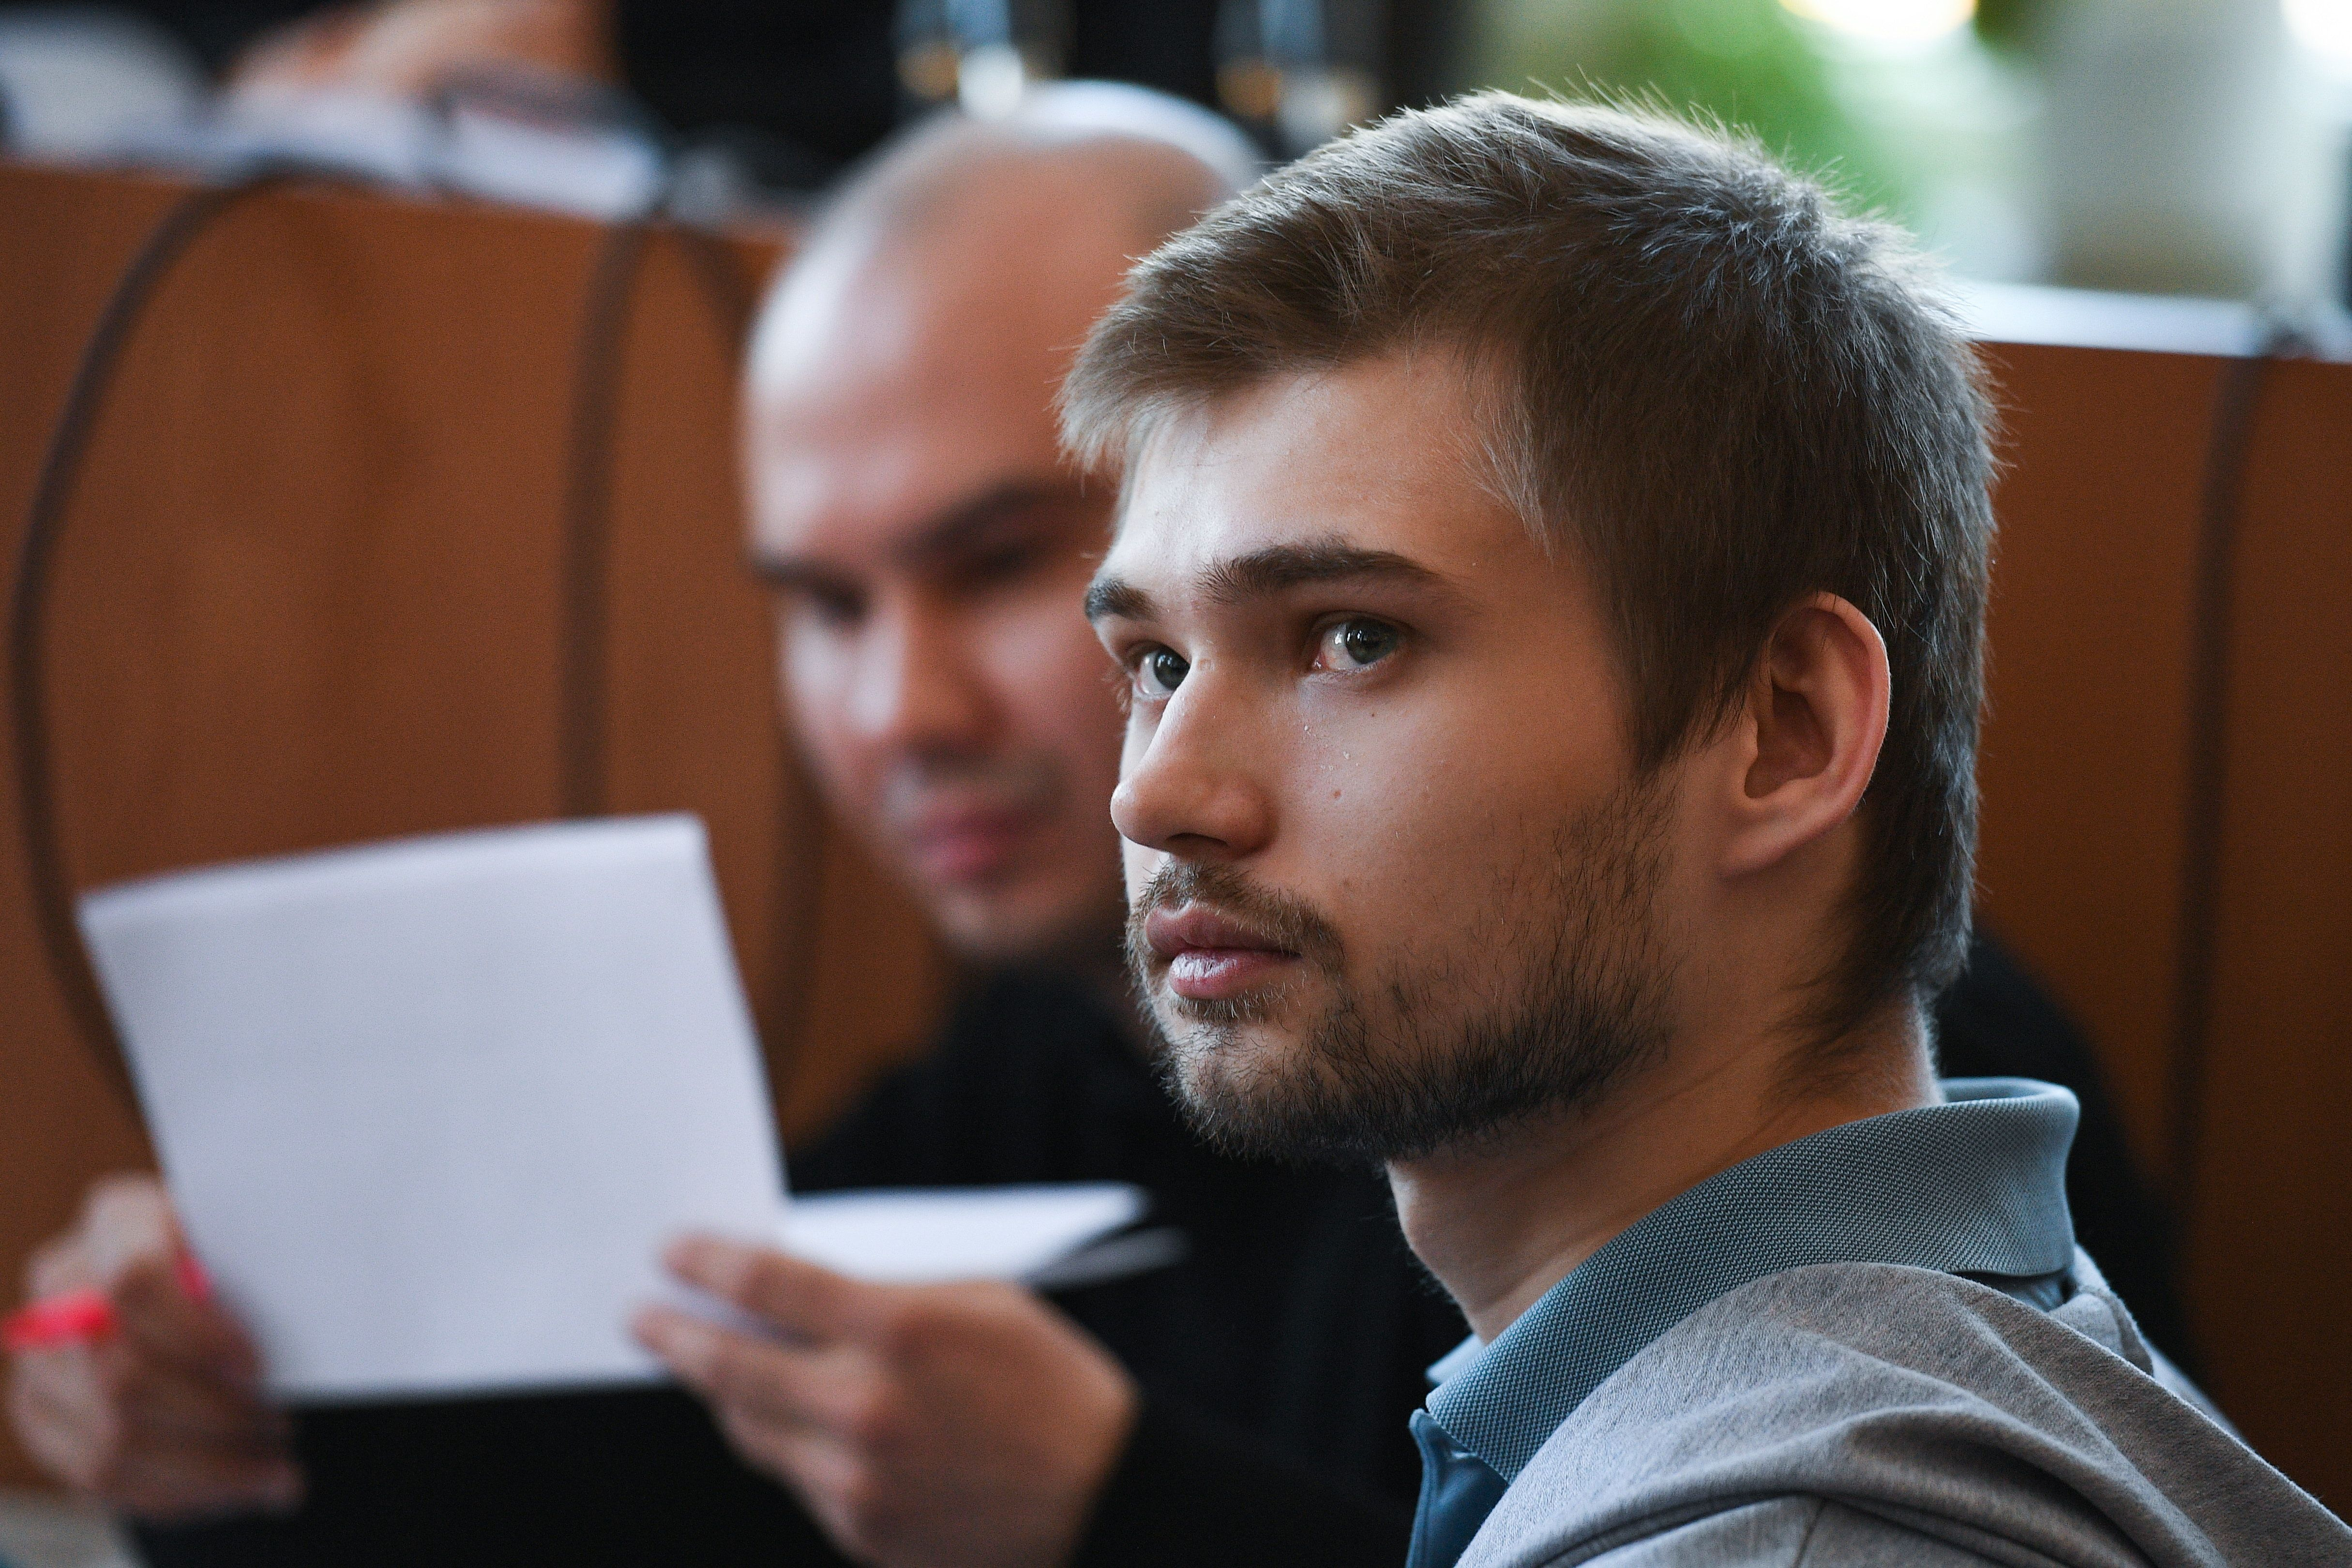 Blogger Ruslan Sokolovsky was accused of extremism and offending religious believers.